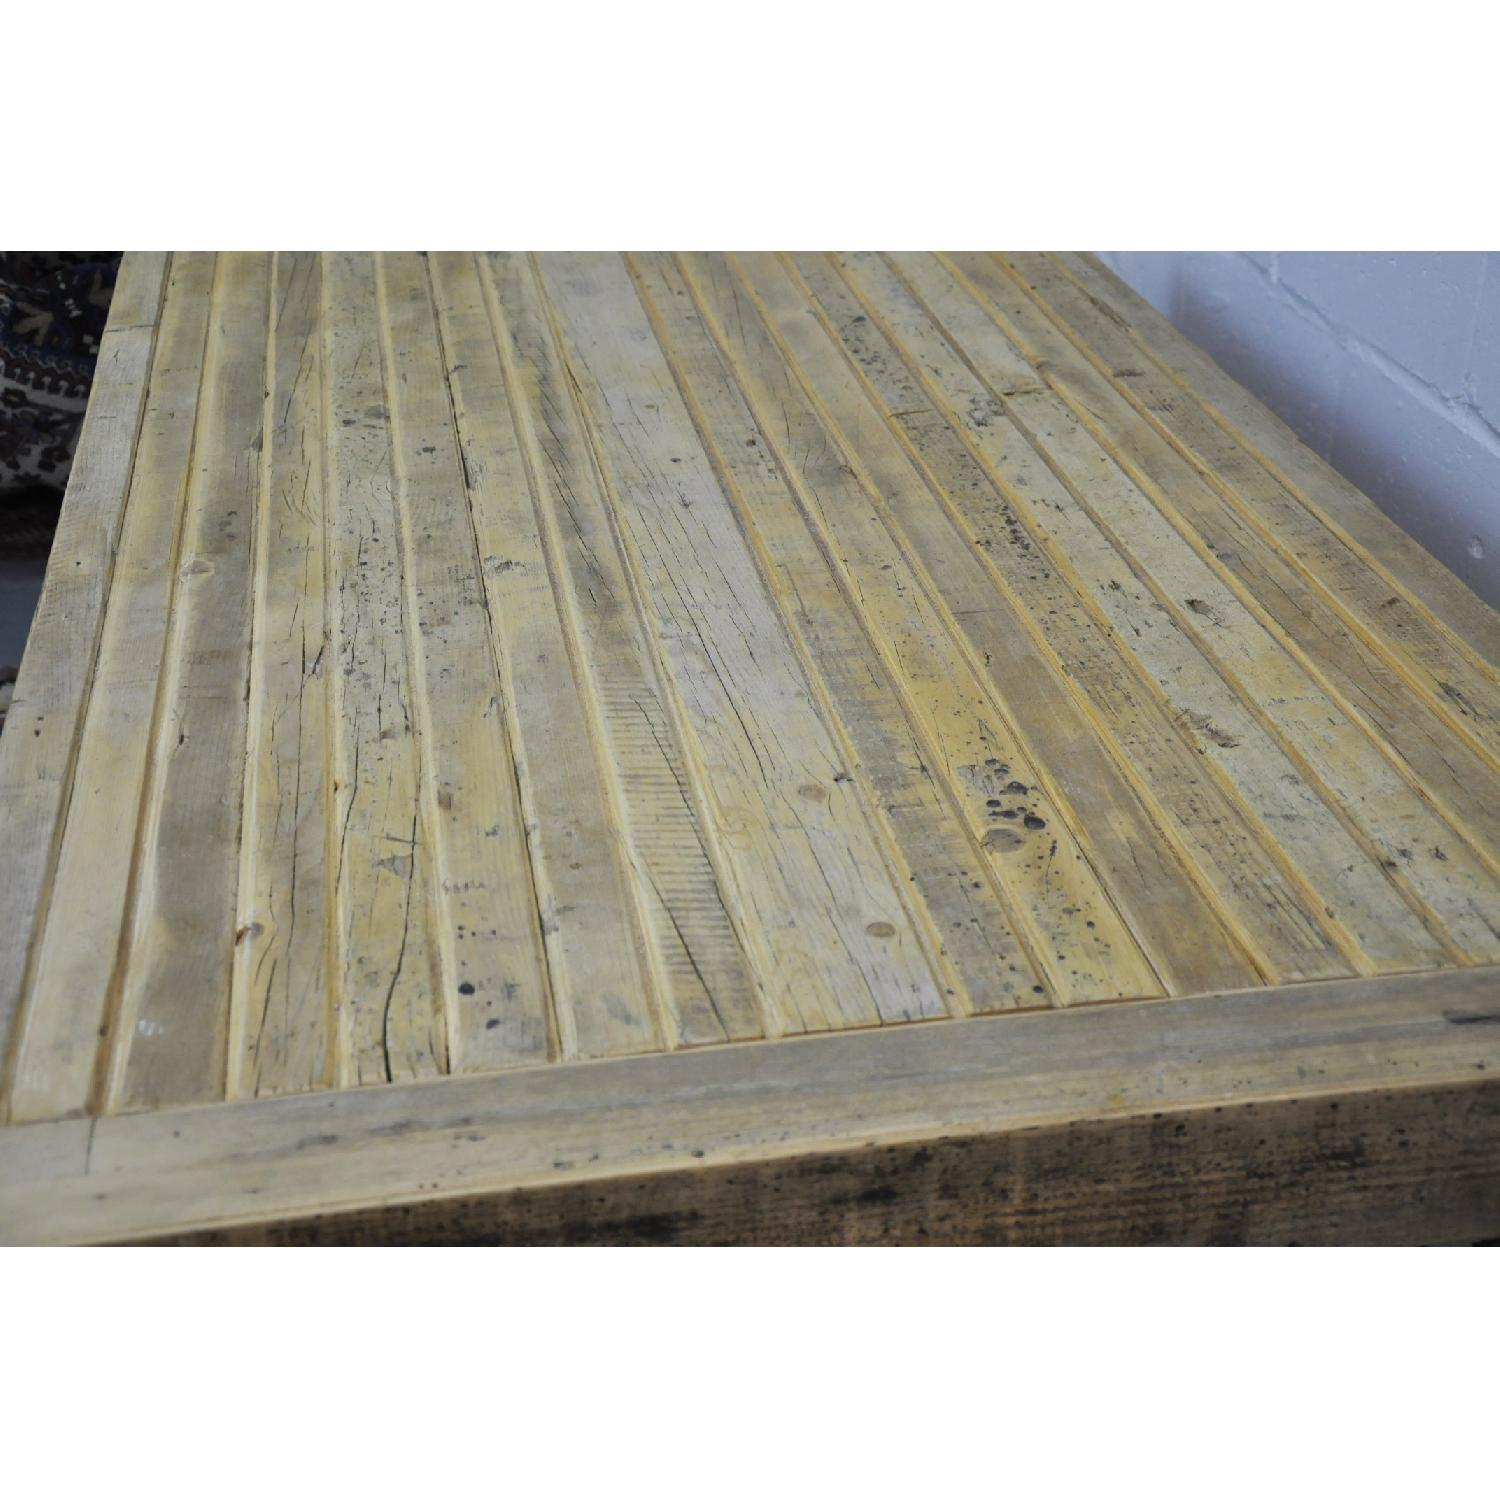 Contemporary Rustic Reclaimed Salvaged Wood Dining Table-14